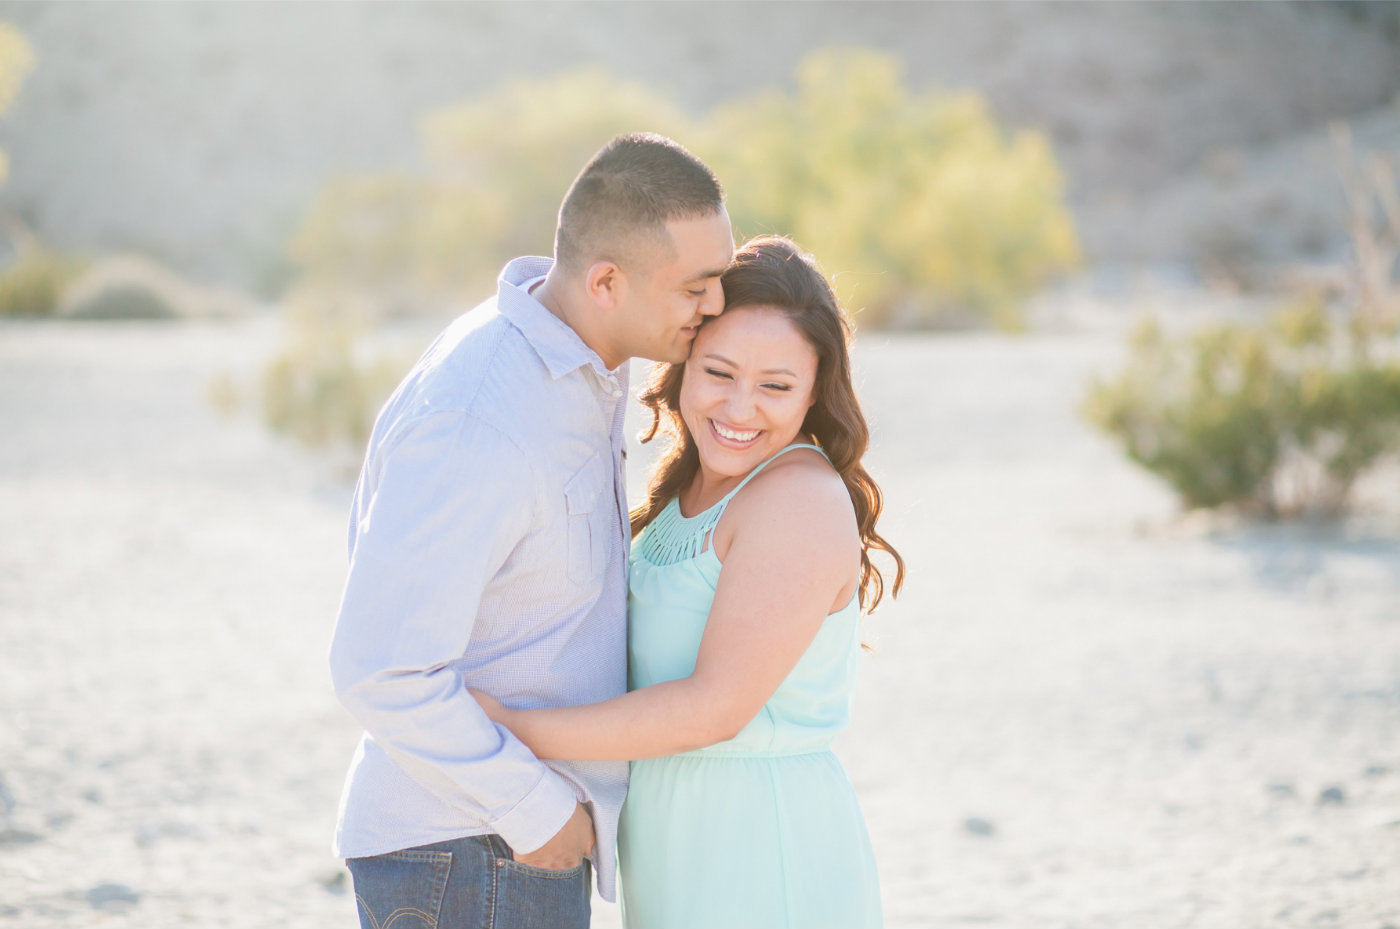 Palm desert couple engaged in the desert